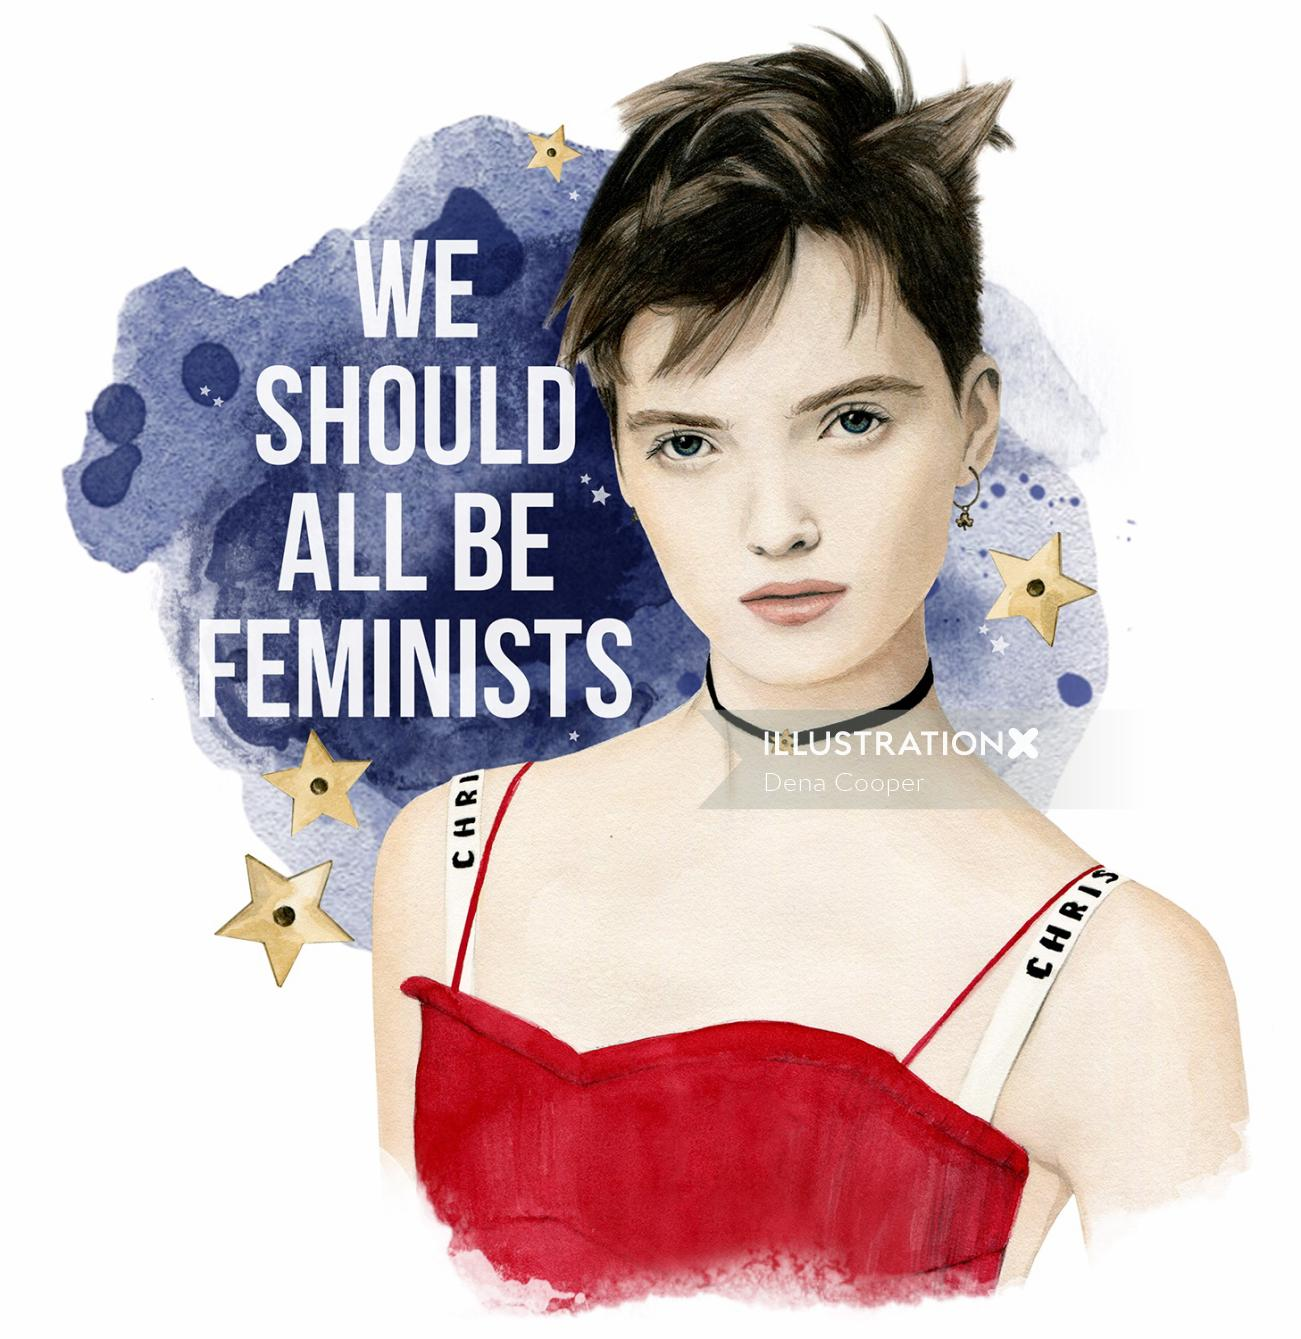 Illustration of a model with feminism graphic